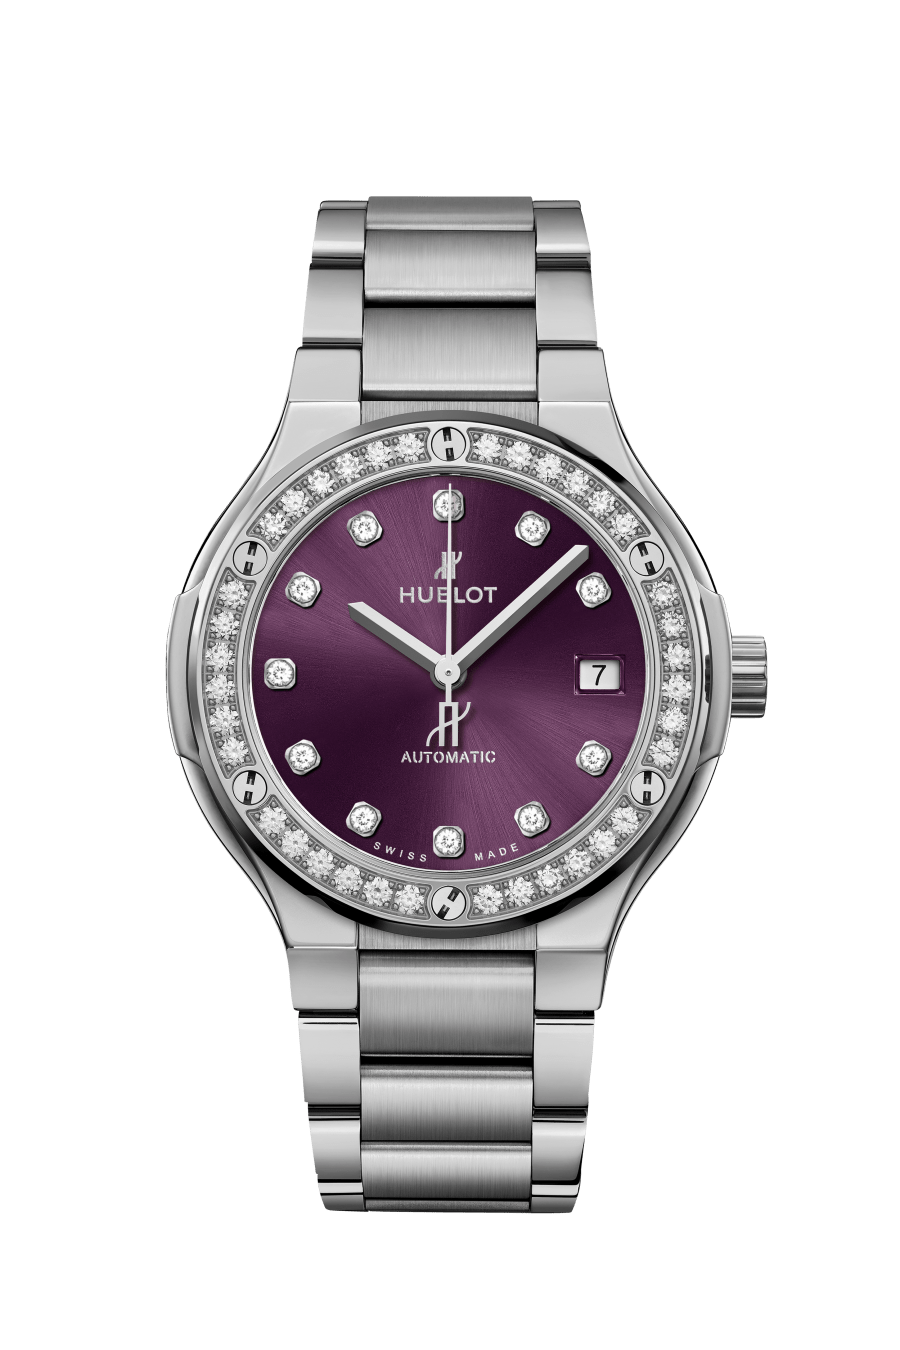 "<p><a class=""link rapid-noclick-resp"" href=""https://www.hublot.com/en-gb/watches/classic-fusion/classic-fusion-titanium-purple-diamonds-bracelet-33-mm"" rel=""nofollow noopener"" target=""_blank"" data-ylk=""slk:SHOP NOW"">SHOP NOW</a></p><p>Hublot can trace the bold outline of its latest Classic Fusion timepiece back to the heady 1980s. This latest model features a shimmering purple 'sunray' dial and a titanium bezel set with 36 white diamonds. </p><p>Classic Fusion Purple Diamonds Bracelet watch, from £9,700, <a href=""https://www.hublot.com/en-gb/watches/classic-fusion/classic-fusion-titanium-purple-diamonds-bracelet-33-mm"" rel=""nofollow noopener"" target=""_blank"" data-ylk=""slk:Hublot"" class=""link rapid-noclick-resp"">Hublot</a></p>"